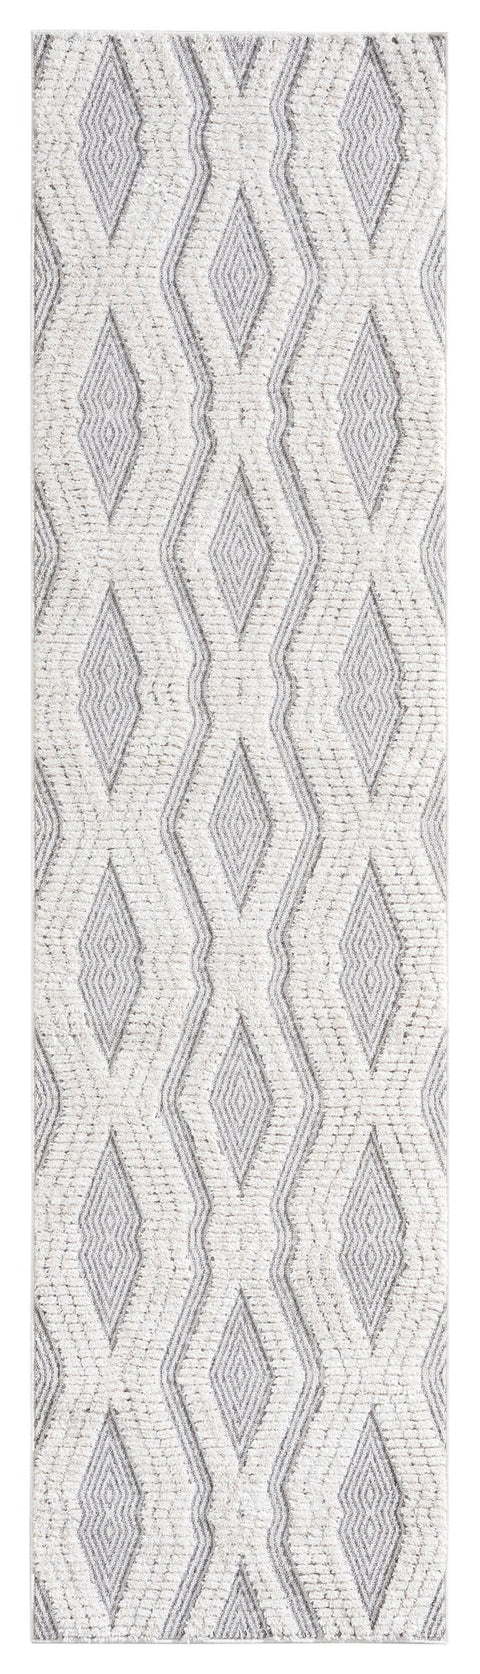 Dayna Ivory and Grey Textured Diamond Tribal Runner Rug